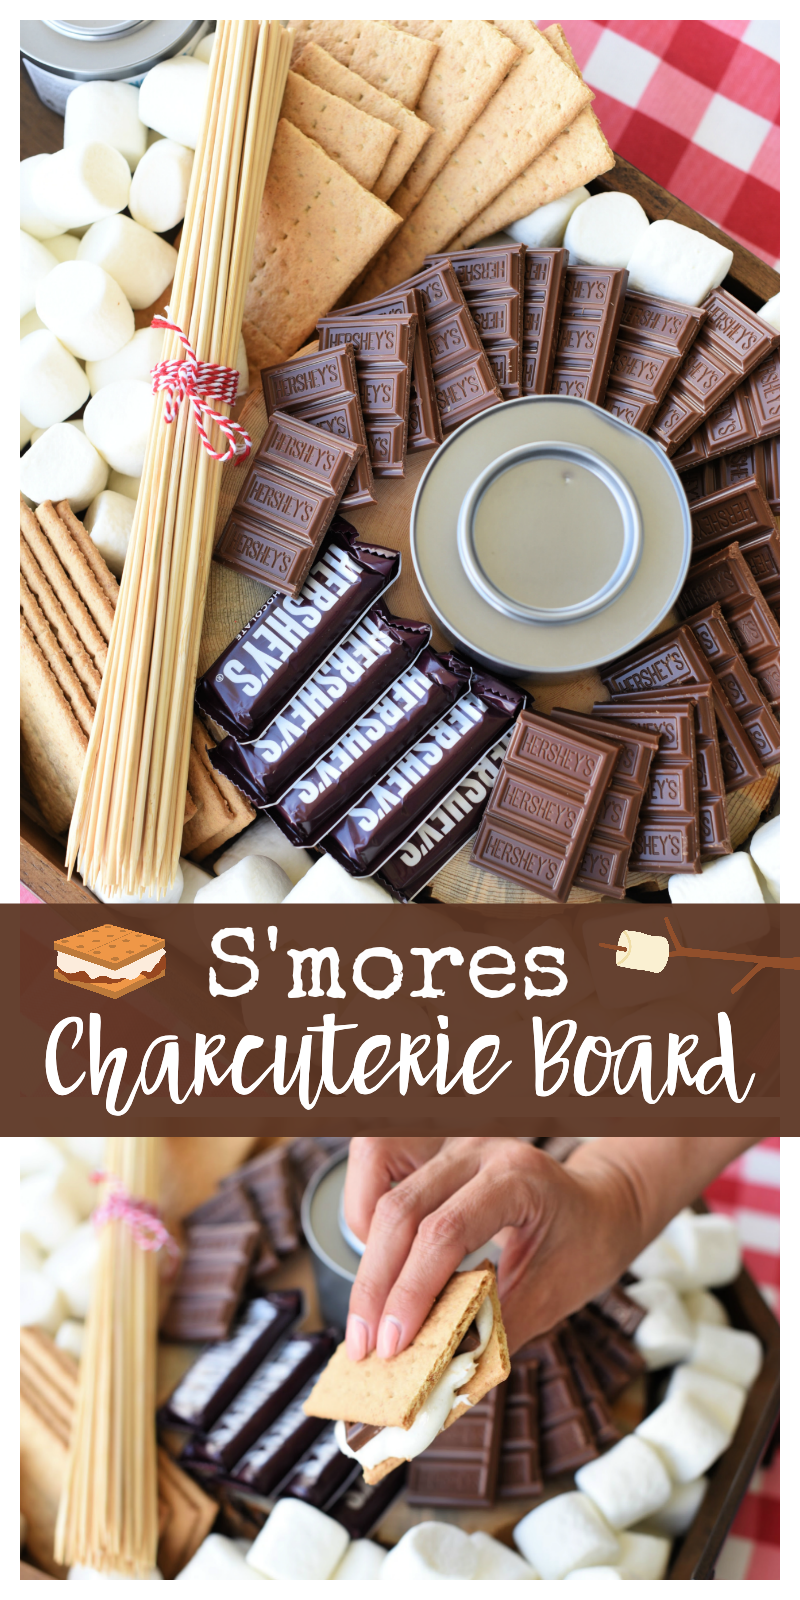 Simple S'mores charcuterie board idea. Make your own s'mores charcuterie board for your next summer party. So simple and so fun. #smores #smorescharcuterieboard #charcuterieboard #funpartyidea